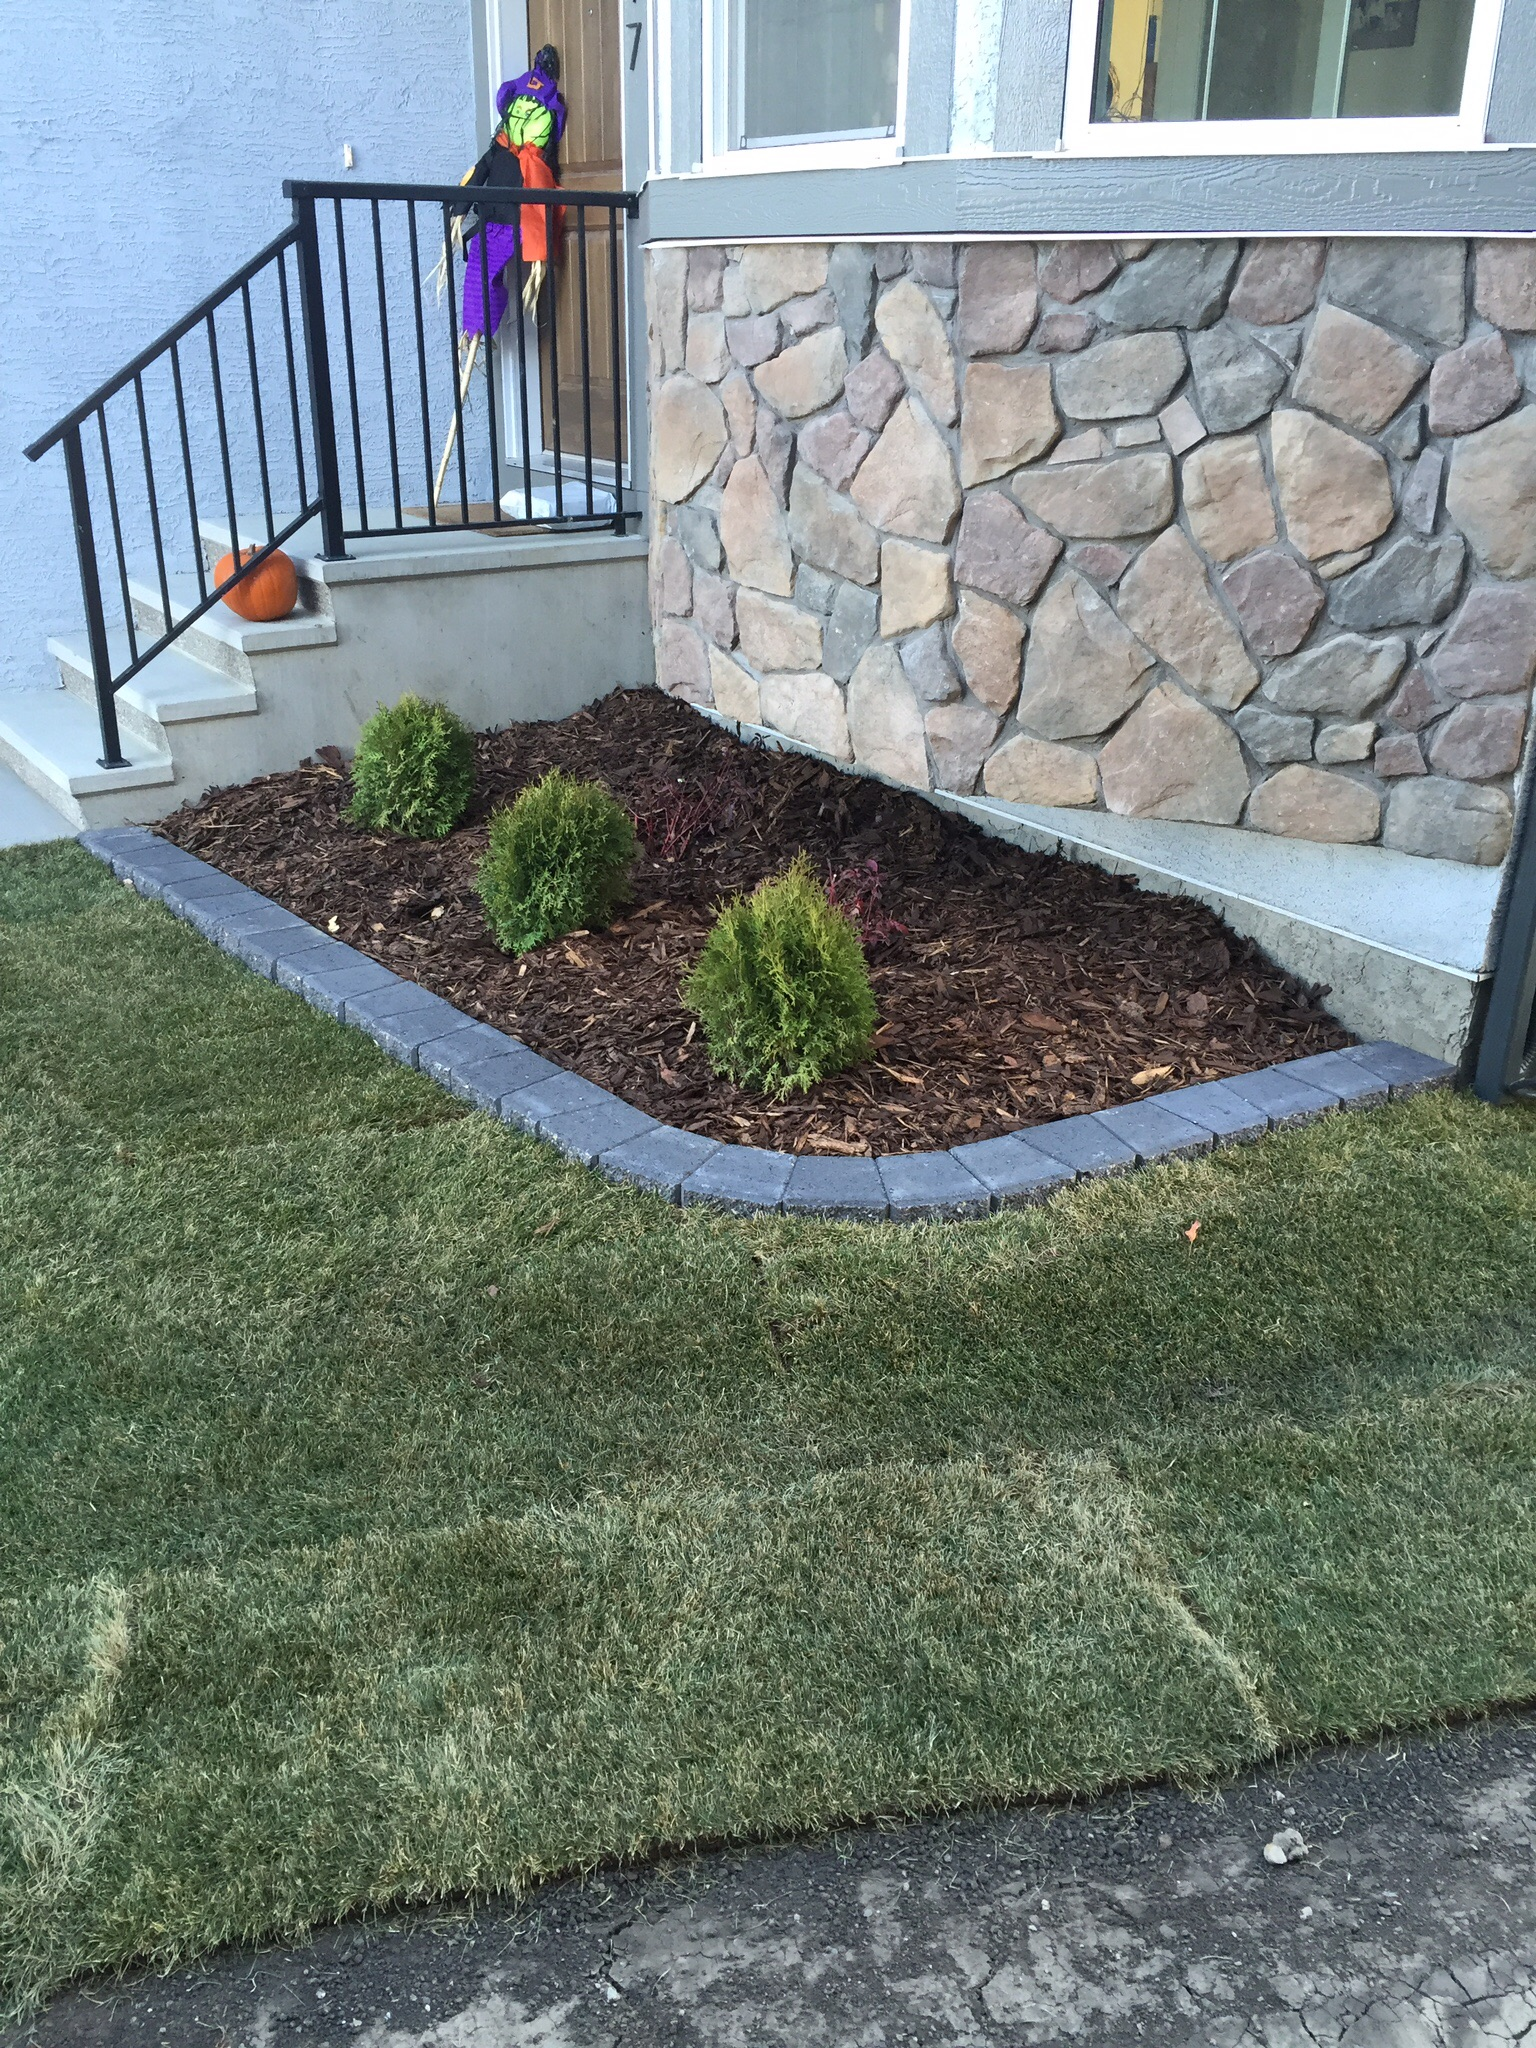 Earth design landscaping and maintenace chestermerelocal for Earth designs landscaping